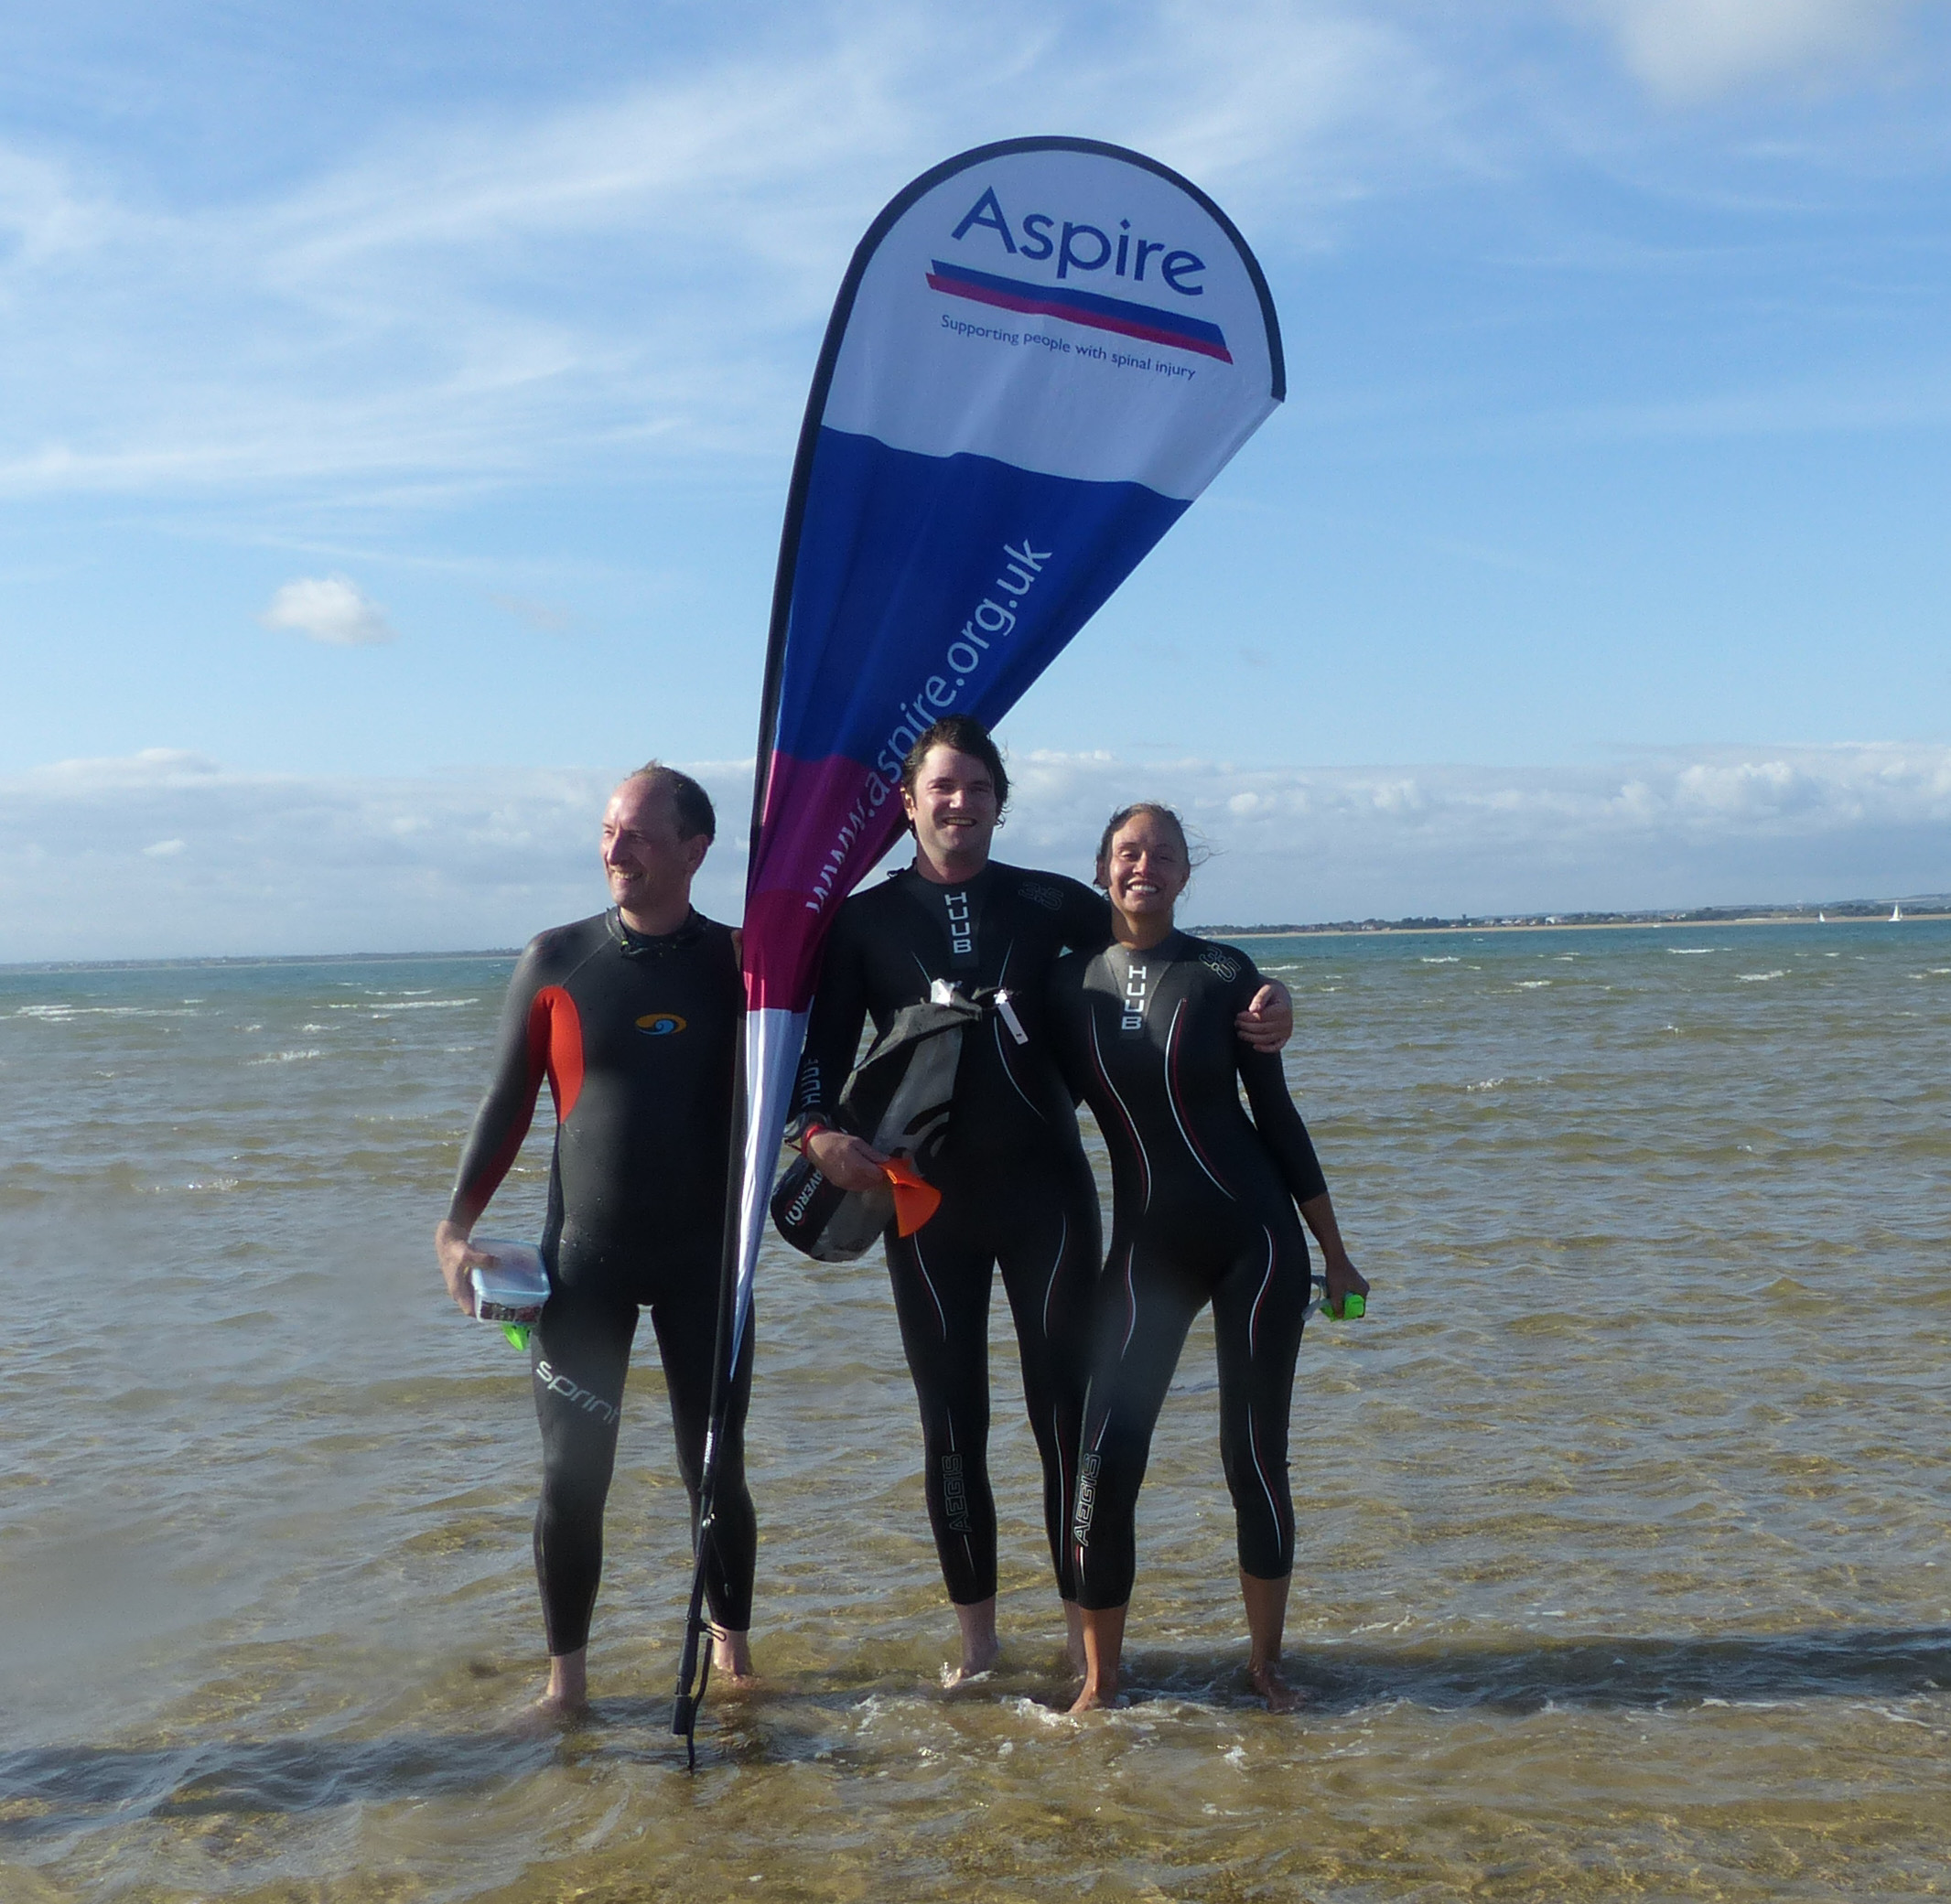 Residential Land Solent Swimmers on Isle of Wight